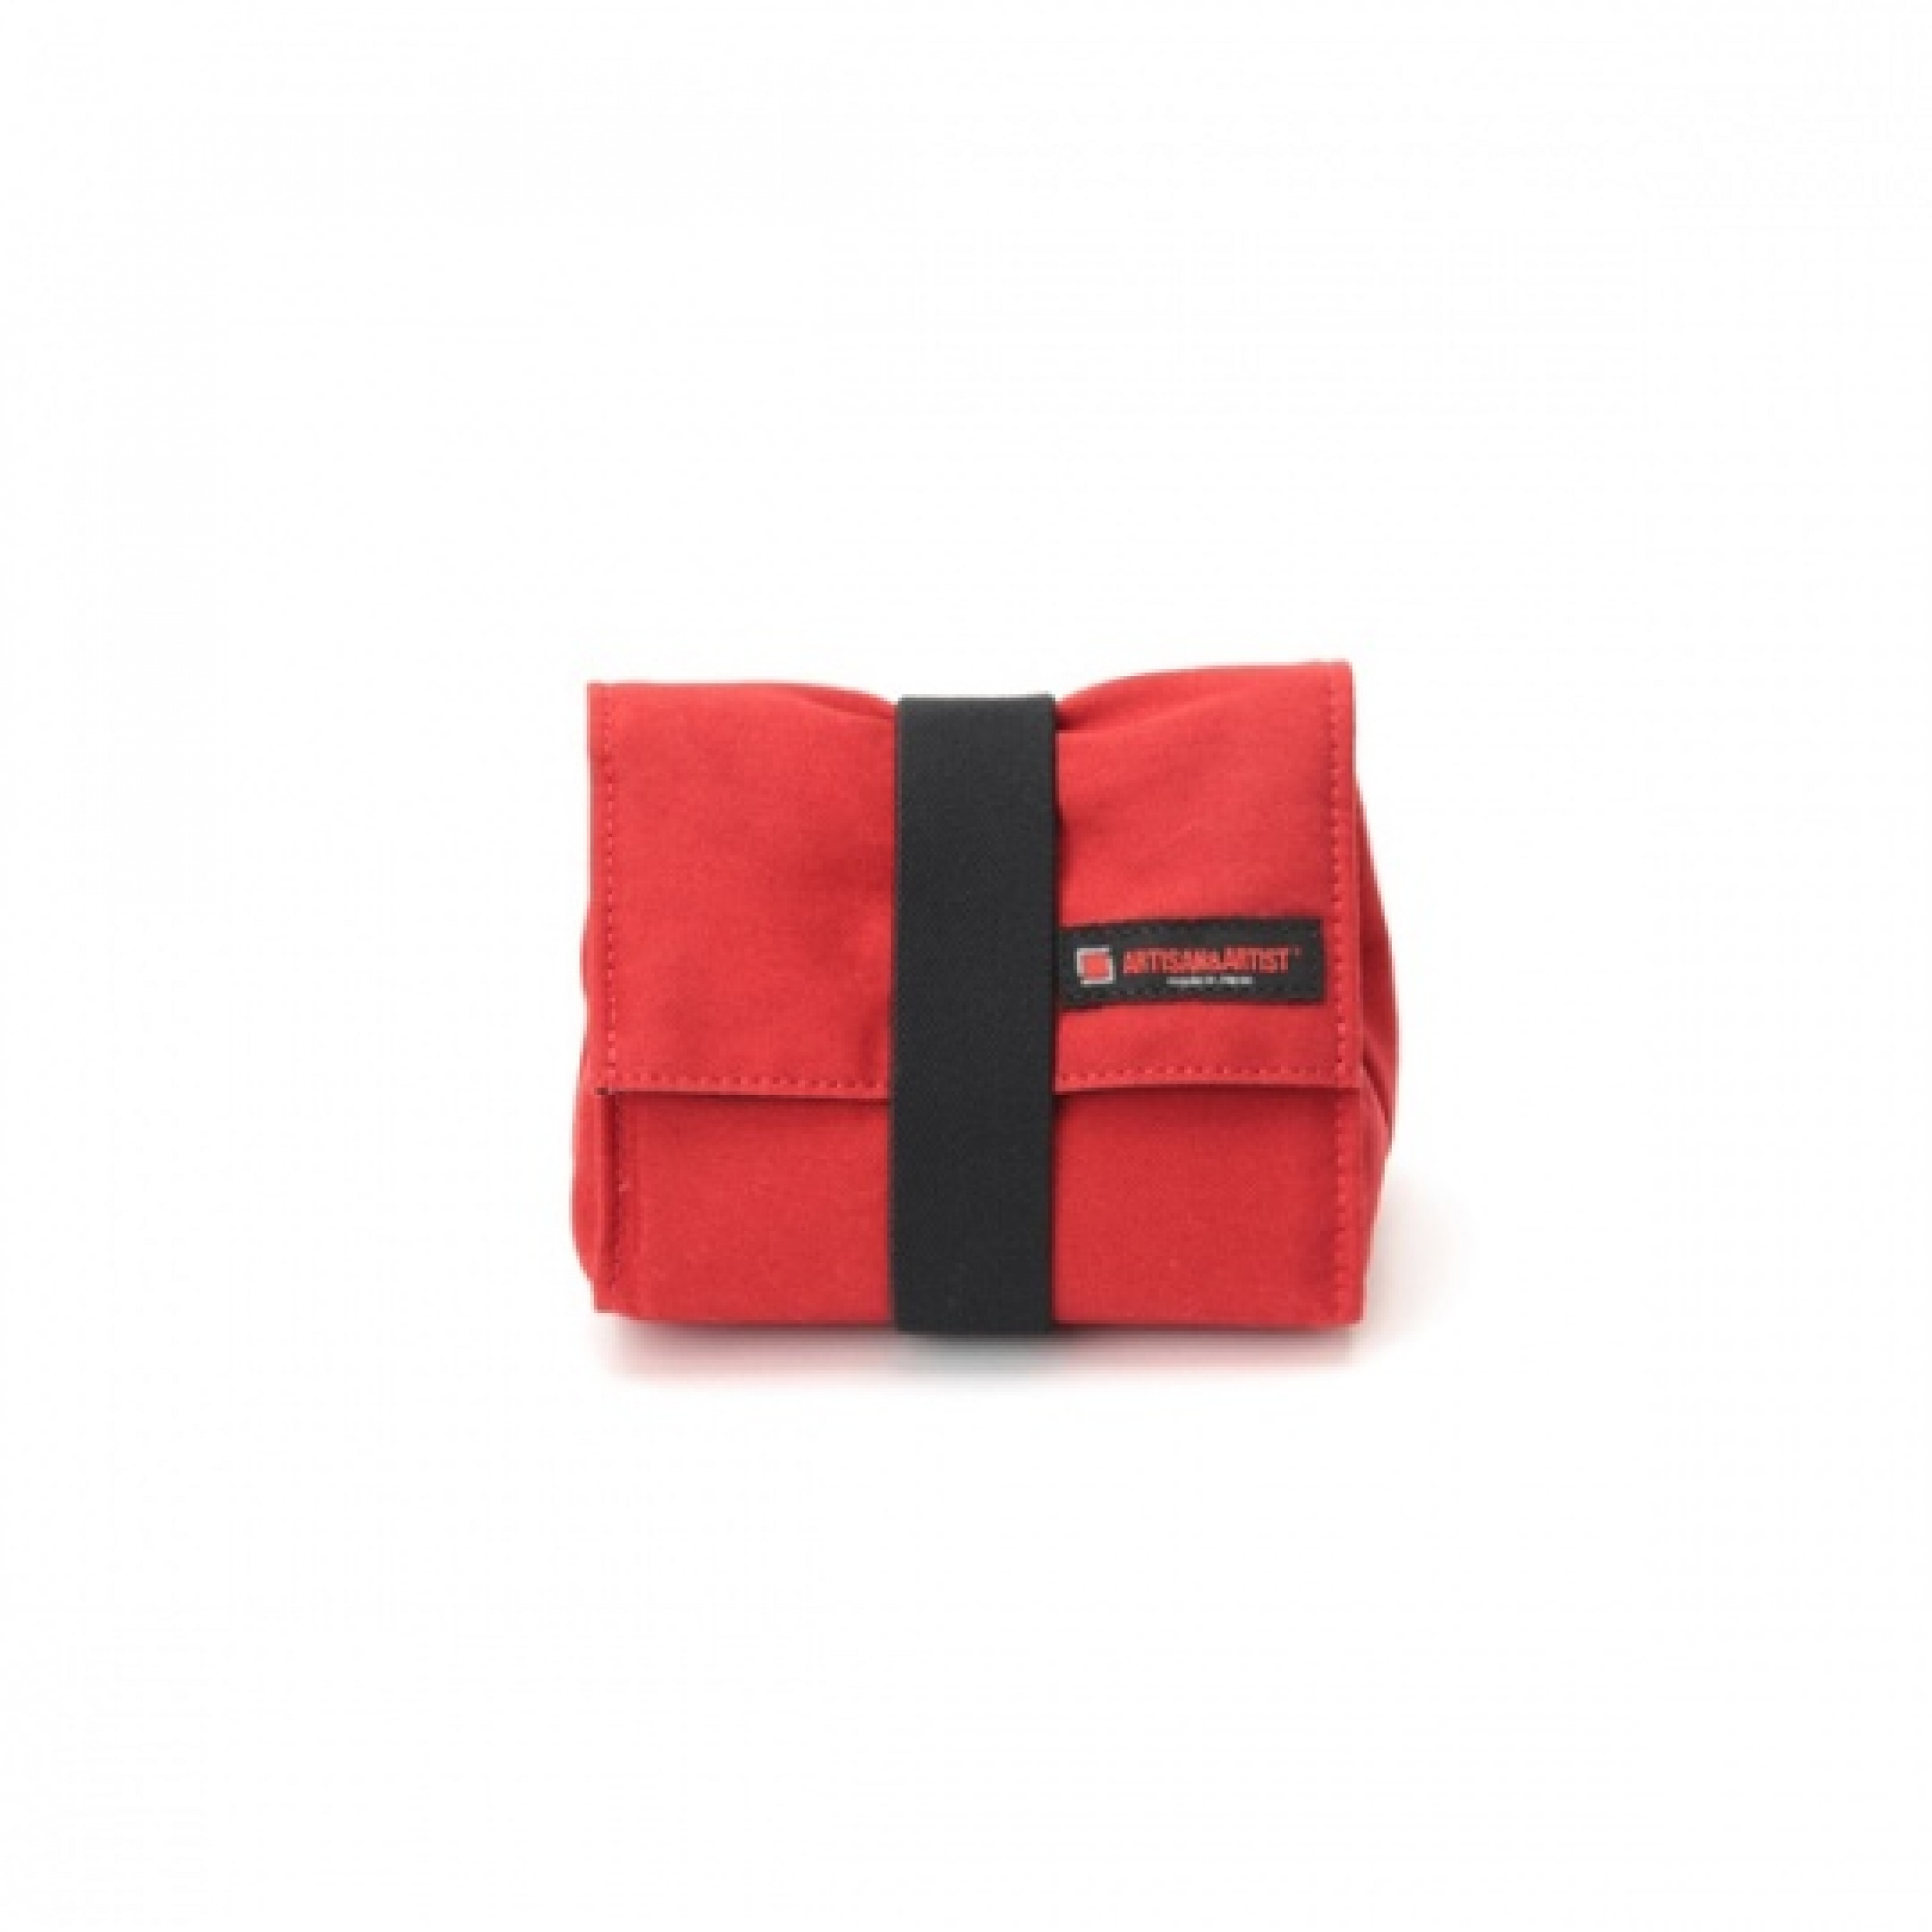 Artisan--and--Artist-ACAM-75-canvas-camera-pouch-red